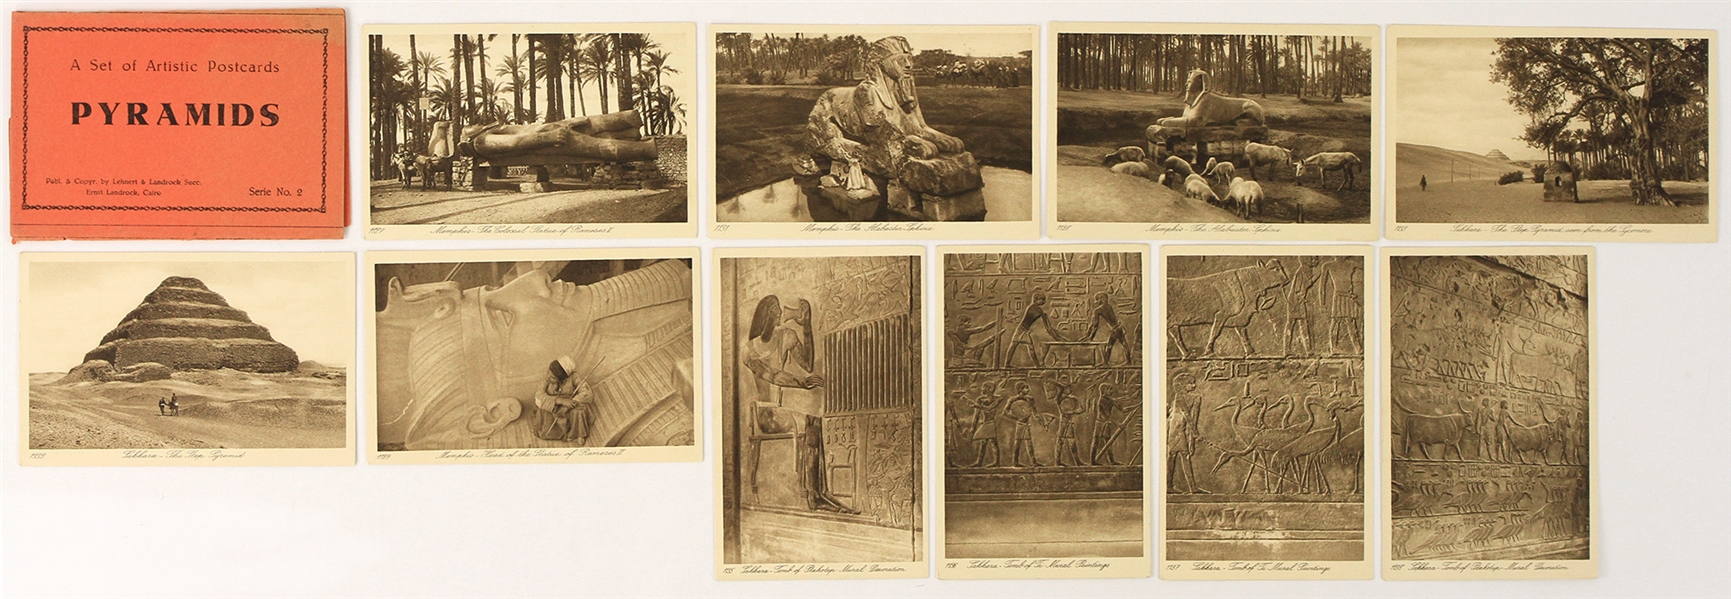 "1920s Lehnert & Landrock Artistic Egyptian Pyramid 3.5"" x 5.5"" Postcards - Lot of 10 w/ Original Cover"